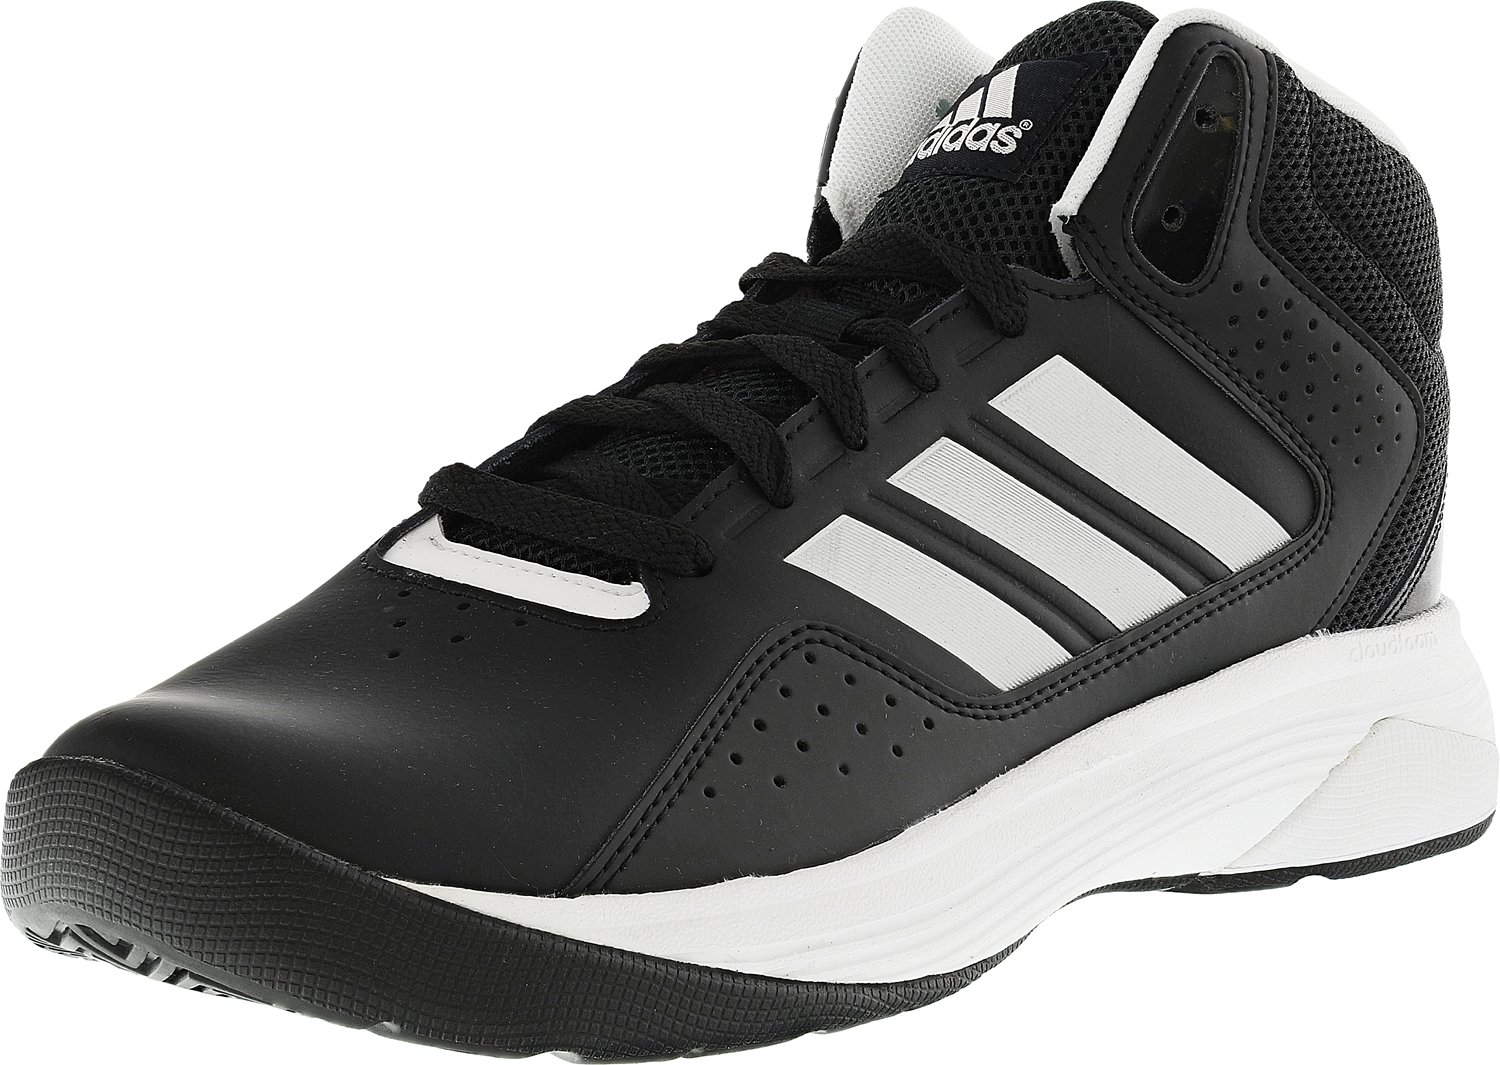 adidas Men's Shoes | Cloudfoam Ilation Mid Basketball, Core Black/Matte Silver/White, (9 W US) by adidas (Image #1)